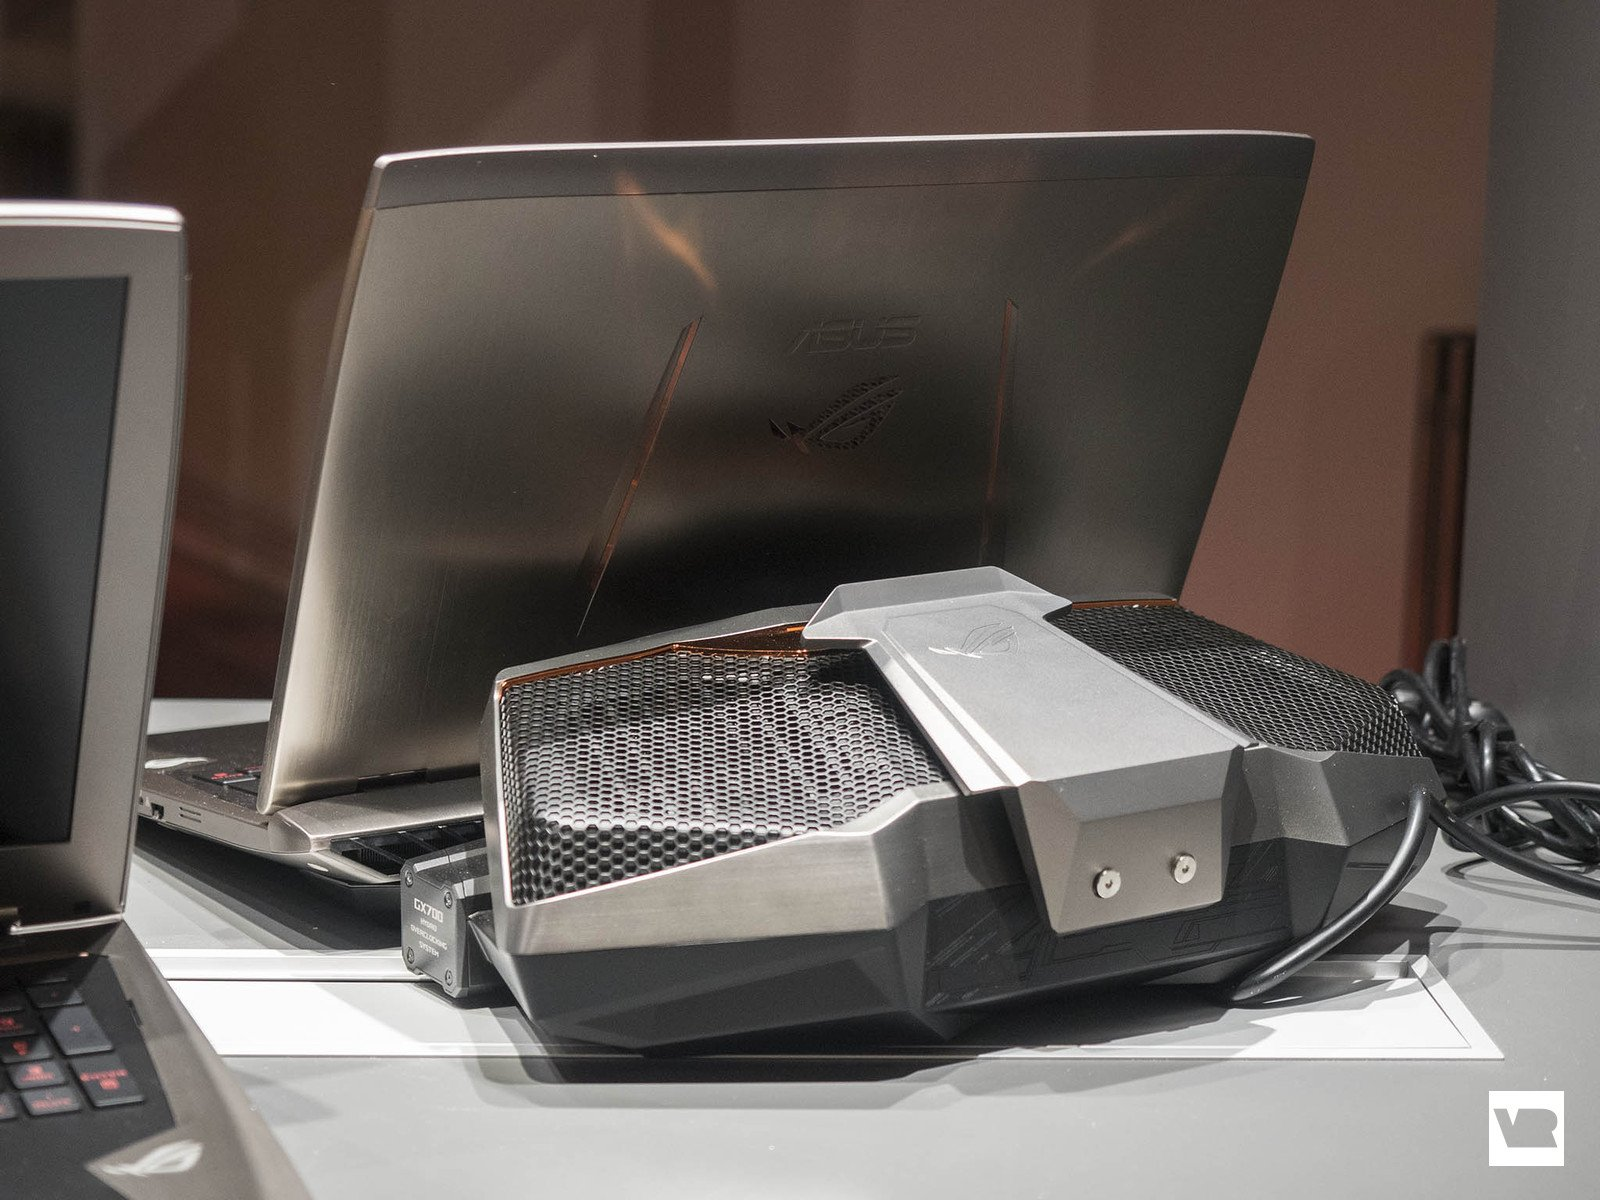 ASUS Water cooled laptop